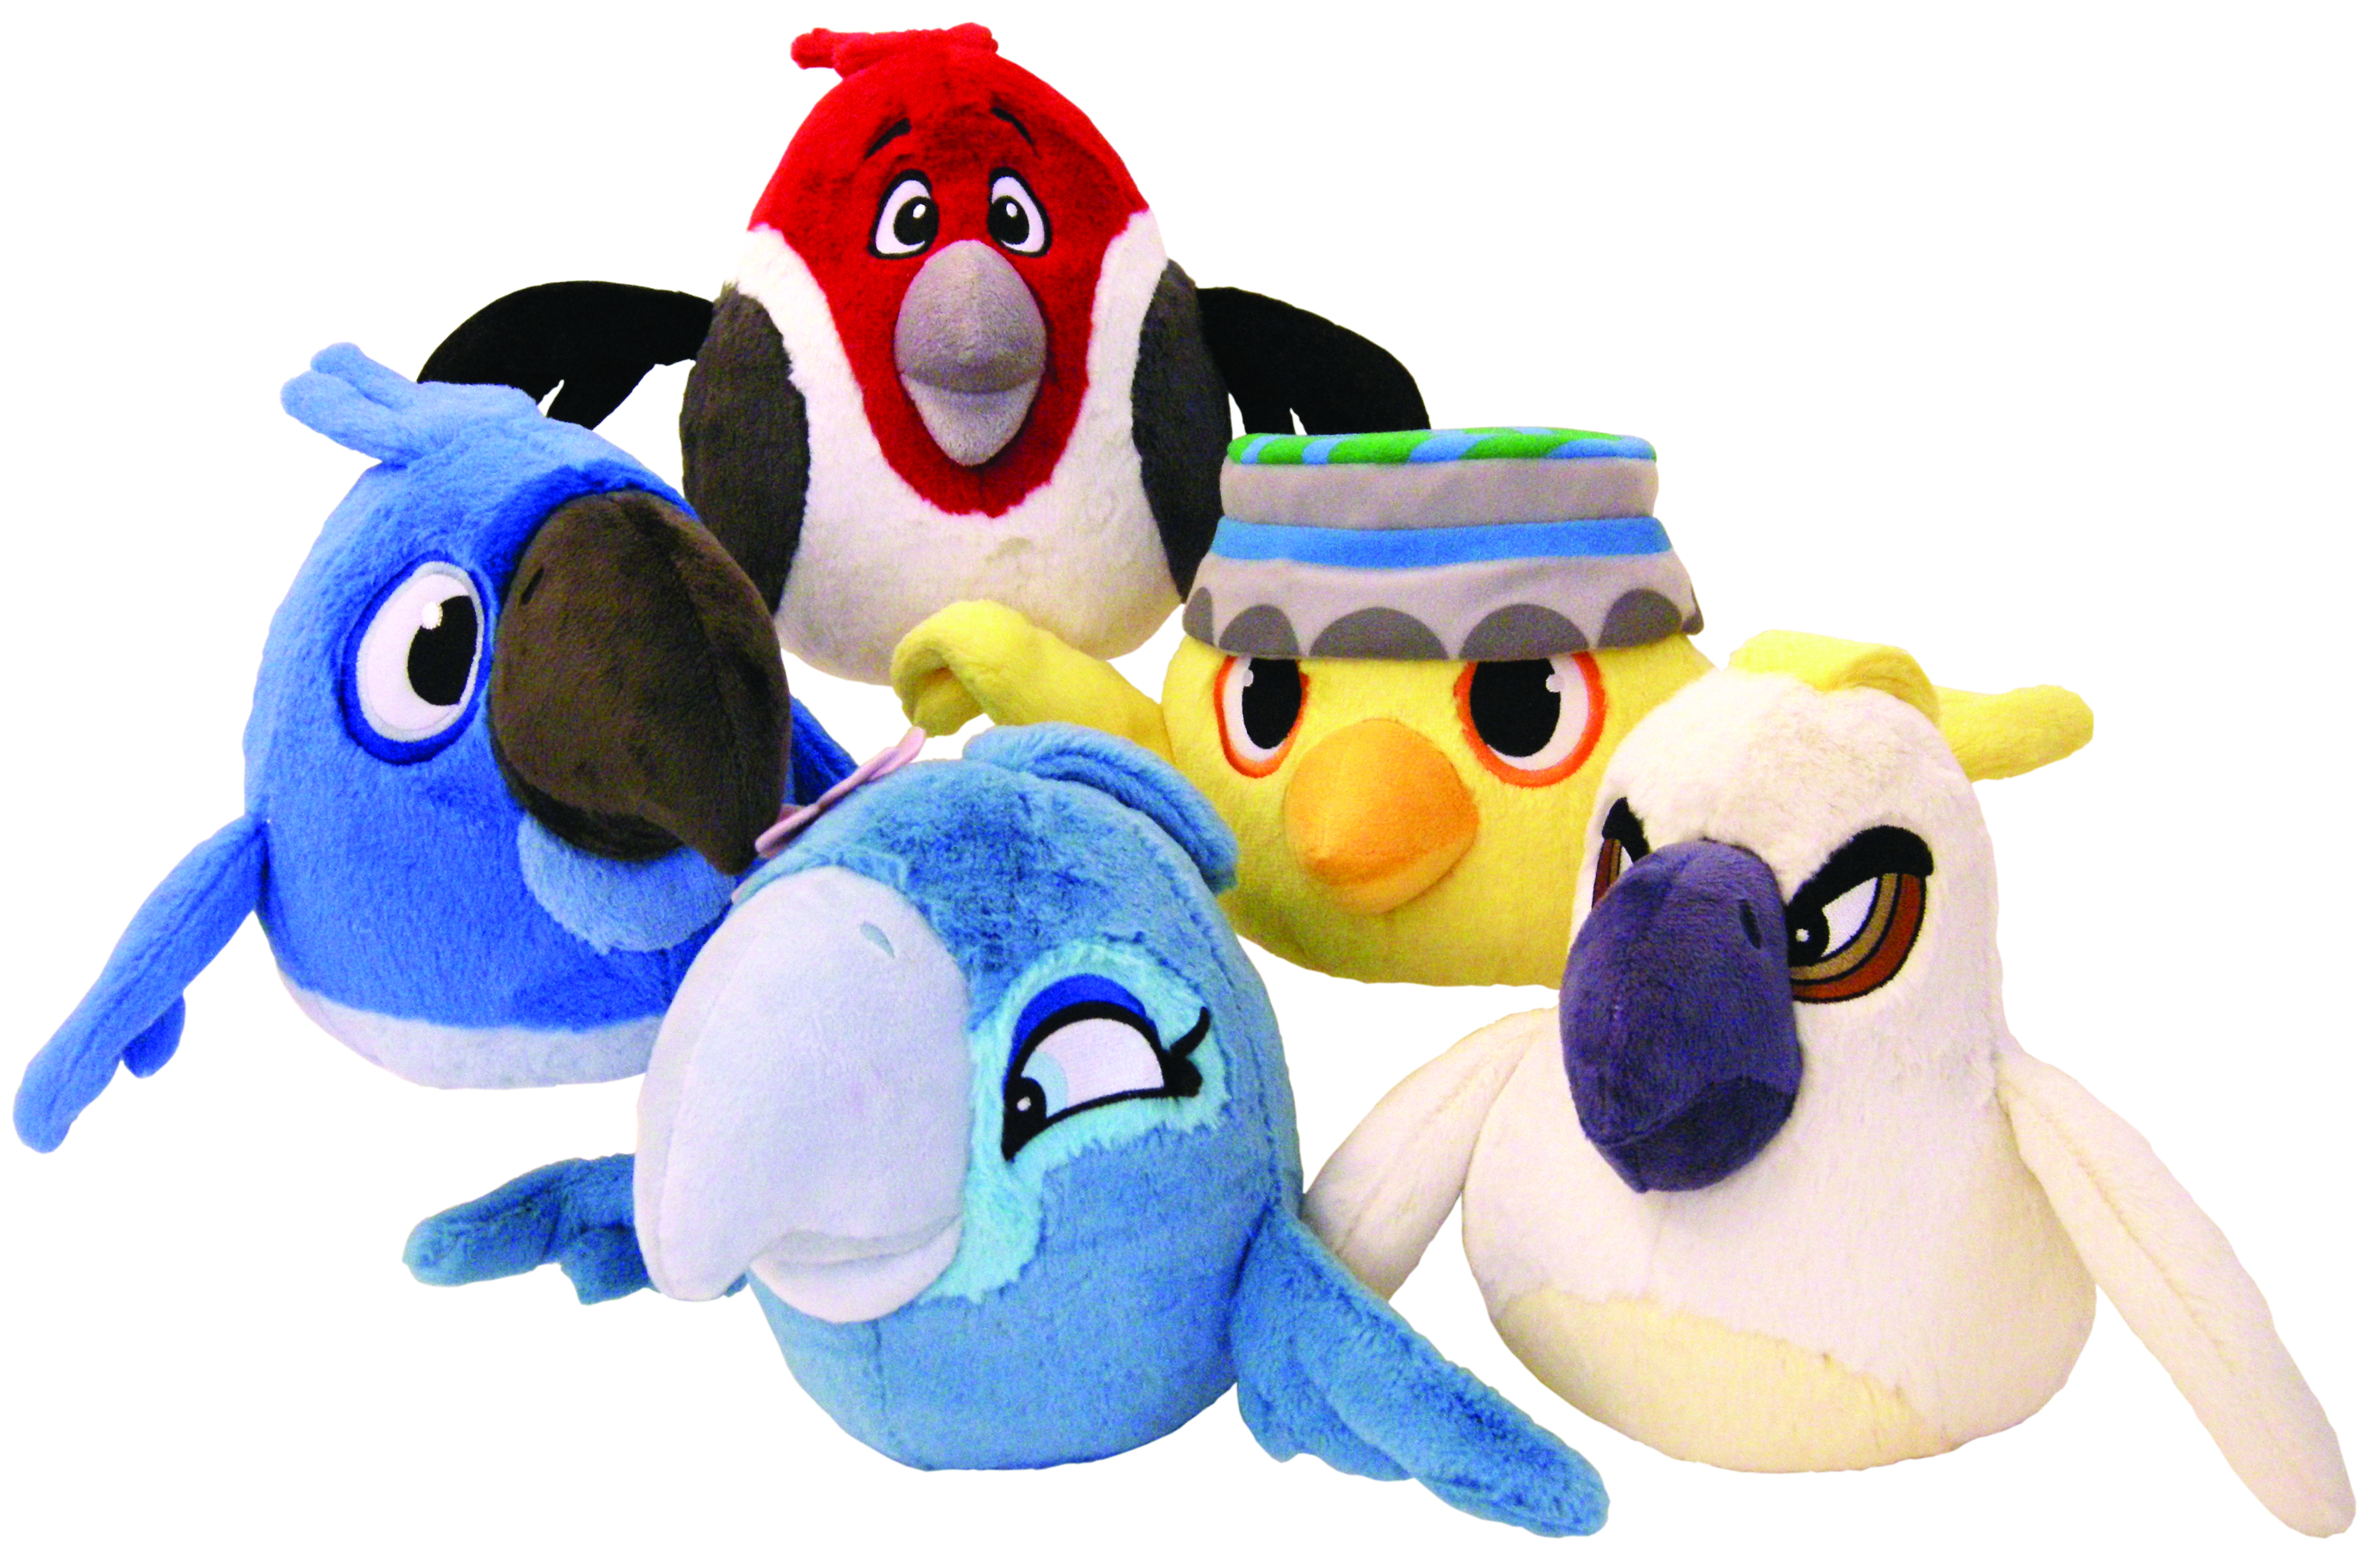 ANGRY BIRDS RIO 8-IN PLUSH ASST